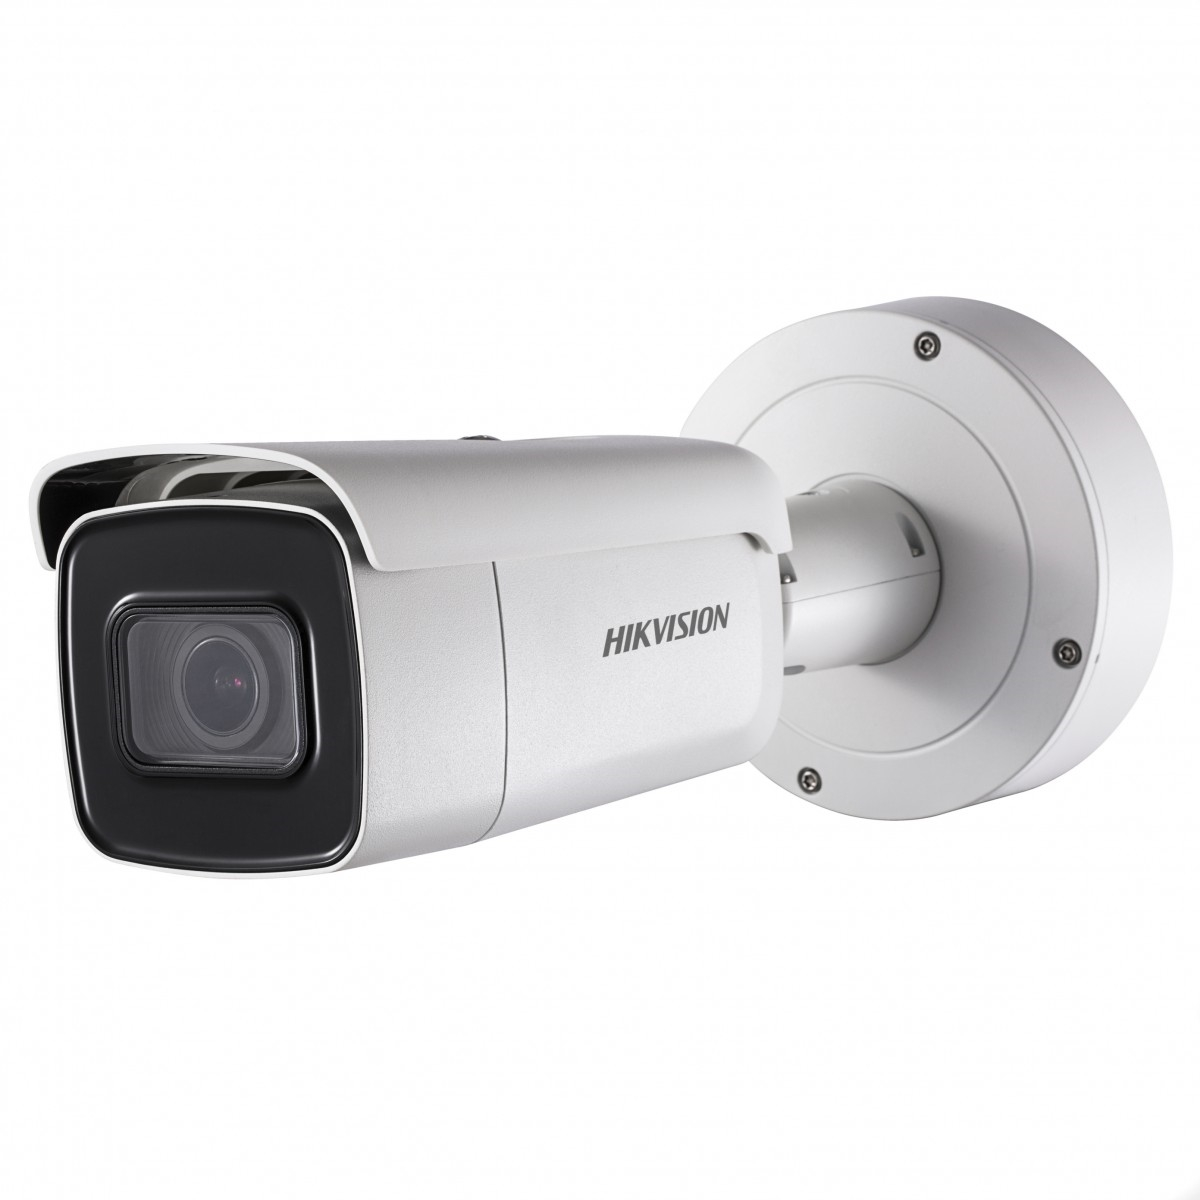 Picture of DS-2CD2663G0-IZS (B)  6MP Outdoor WDR Motorized Varifocal Bullet IP 2.8-12mm Camera Hikvision